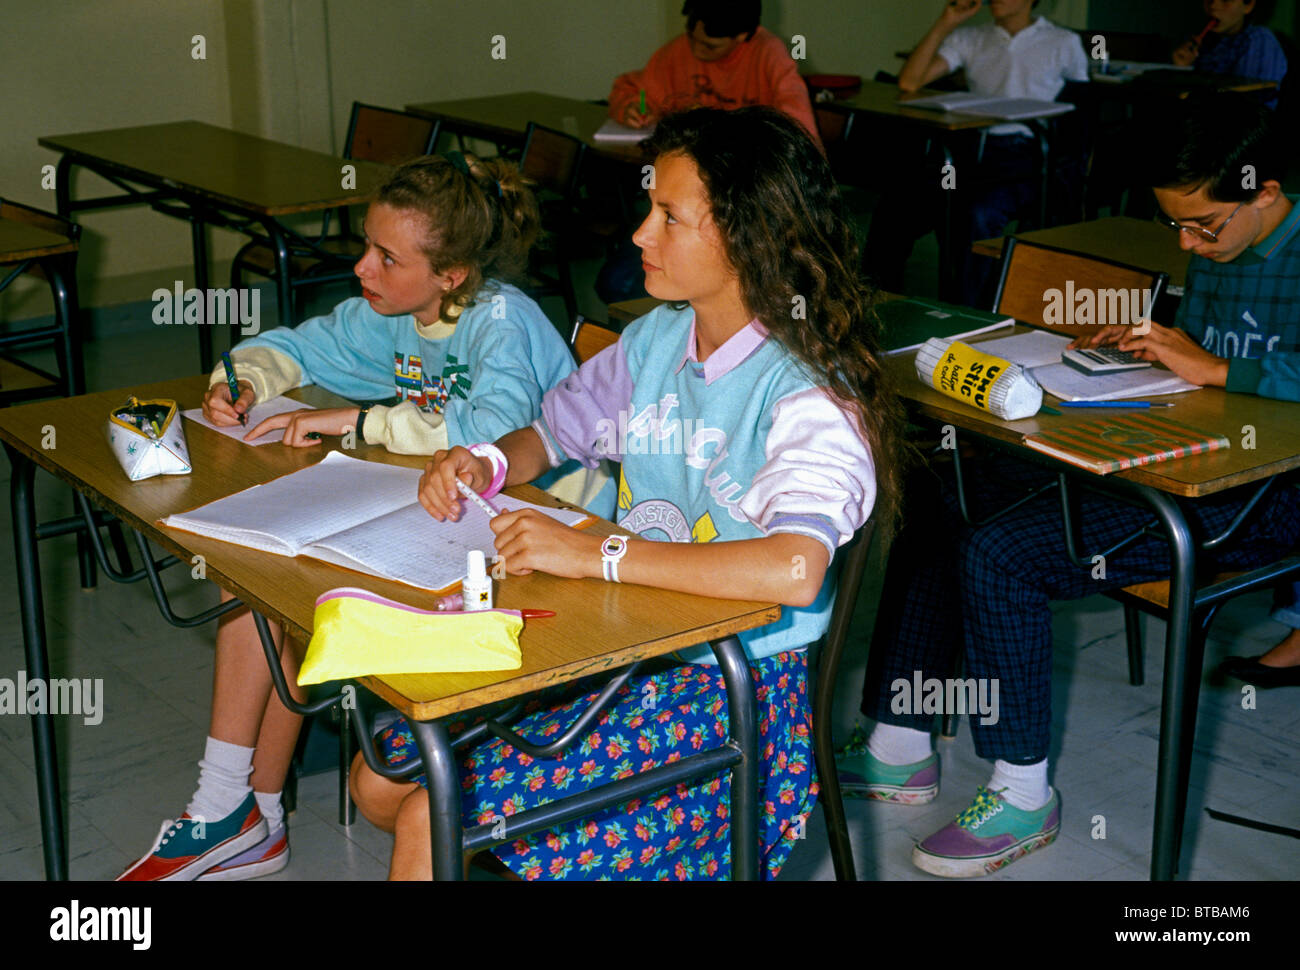 French students, students, French girls, girls, teens, teenage girls, classroom, school, Verneuil-sur-Seine, Ile - Stock Image